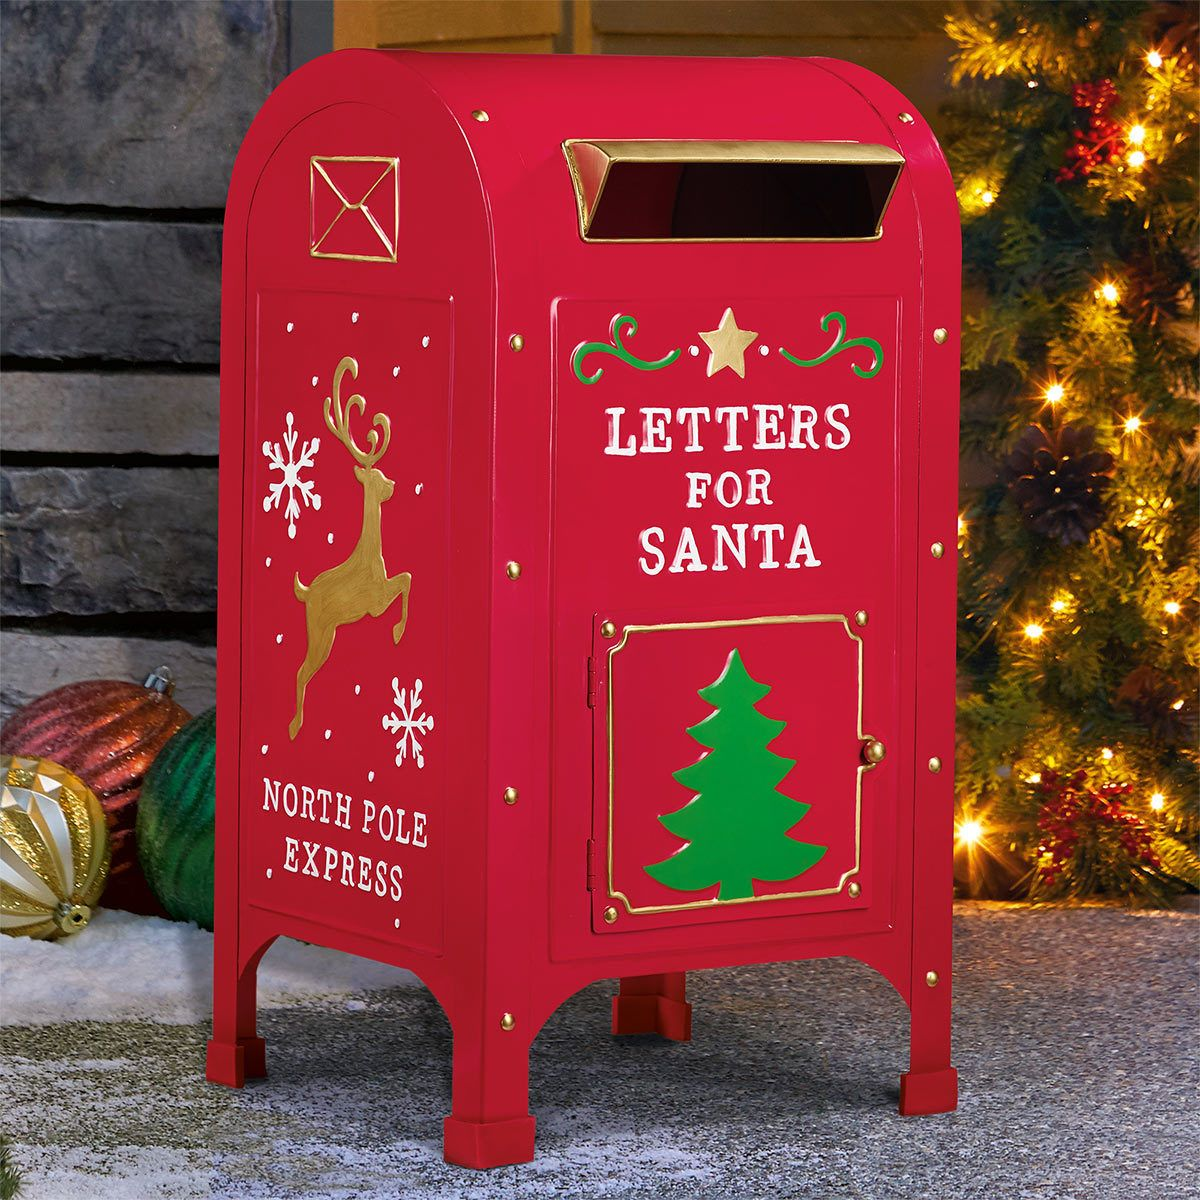 23 Inch 60cm Letters For Santa North Pole Express Metal Mailbox Costco Uk Office Christmas Decorations Santa North Pole North Pole